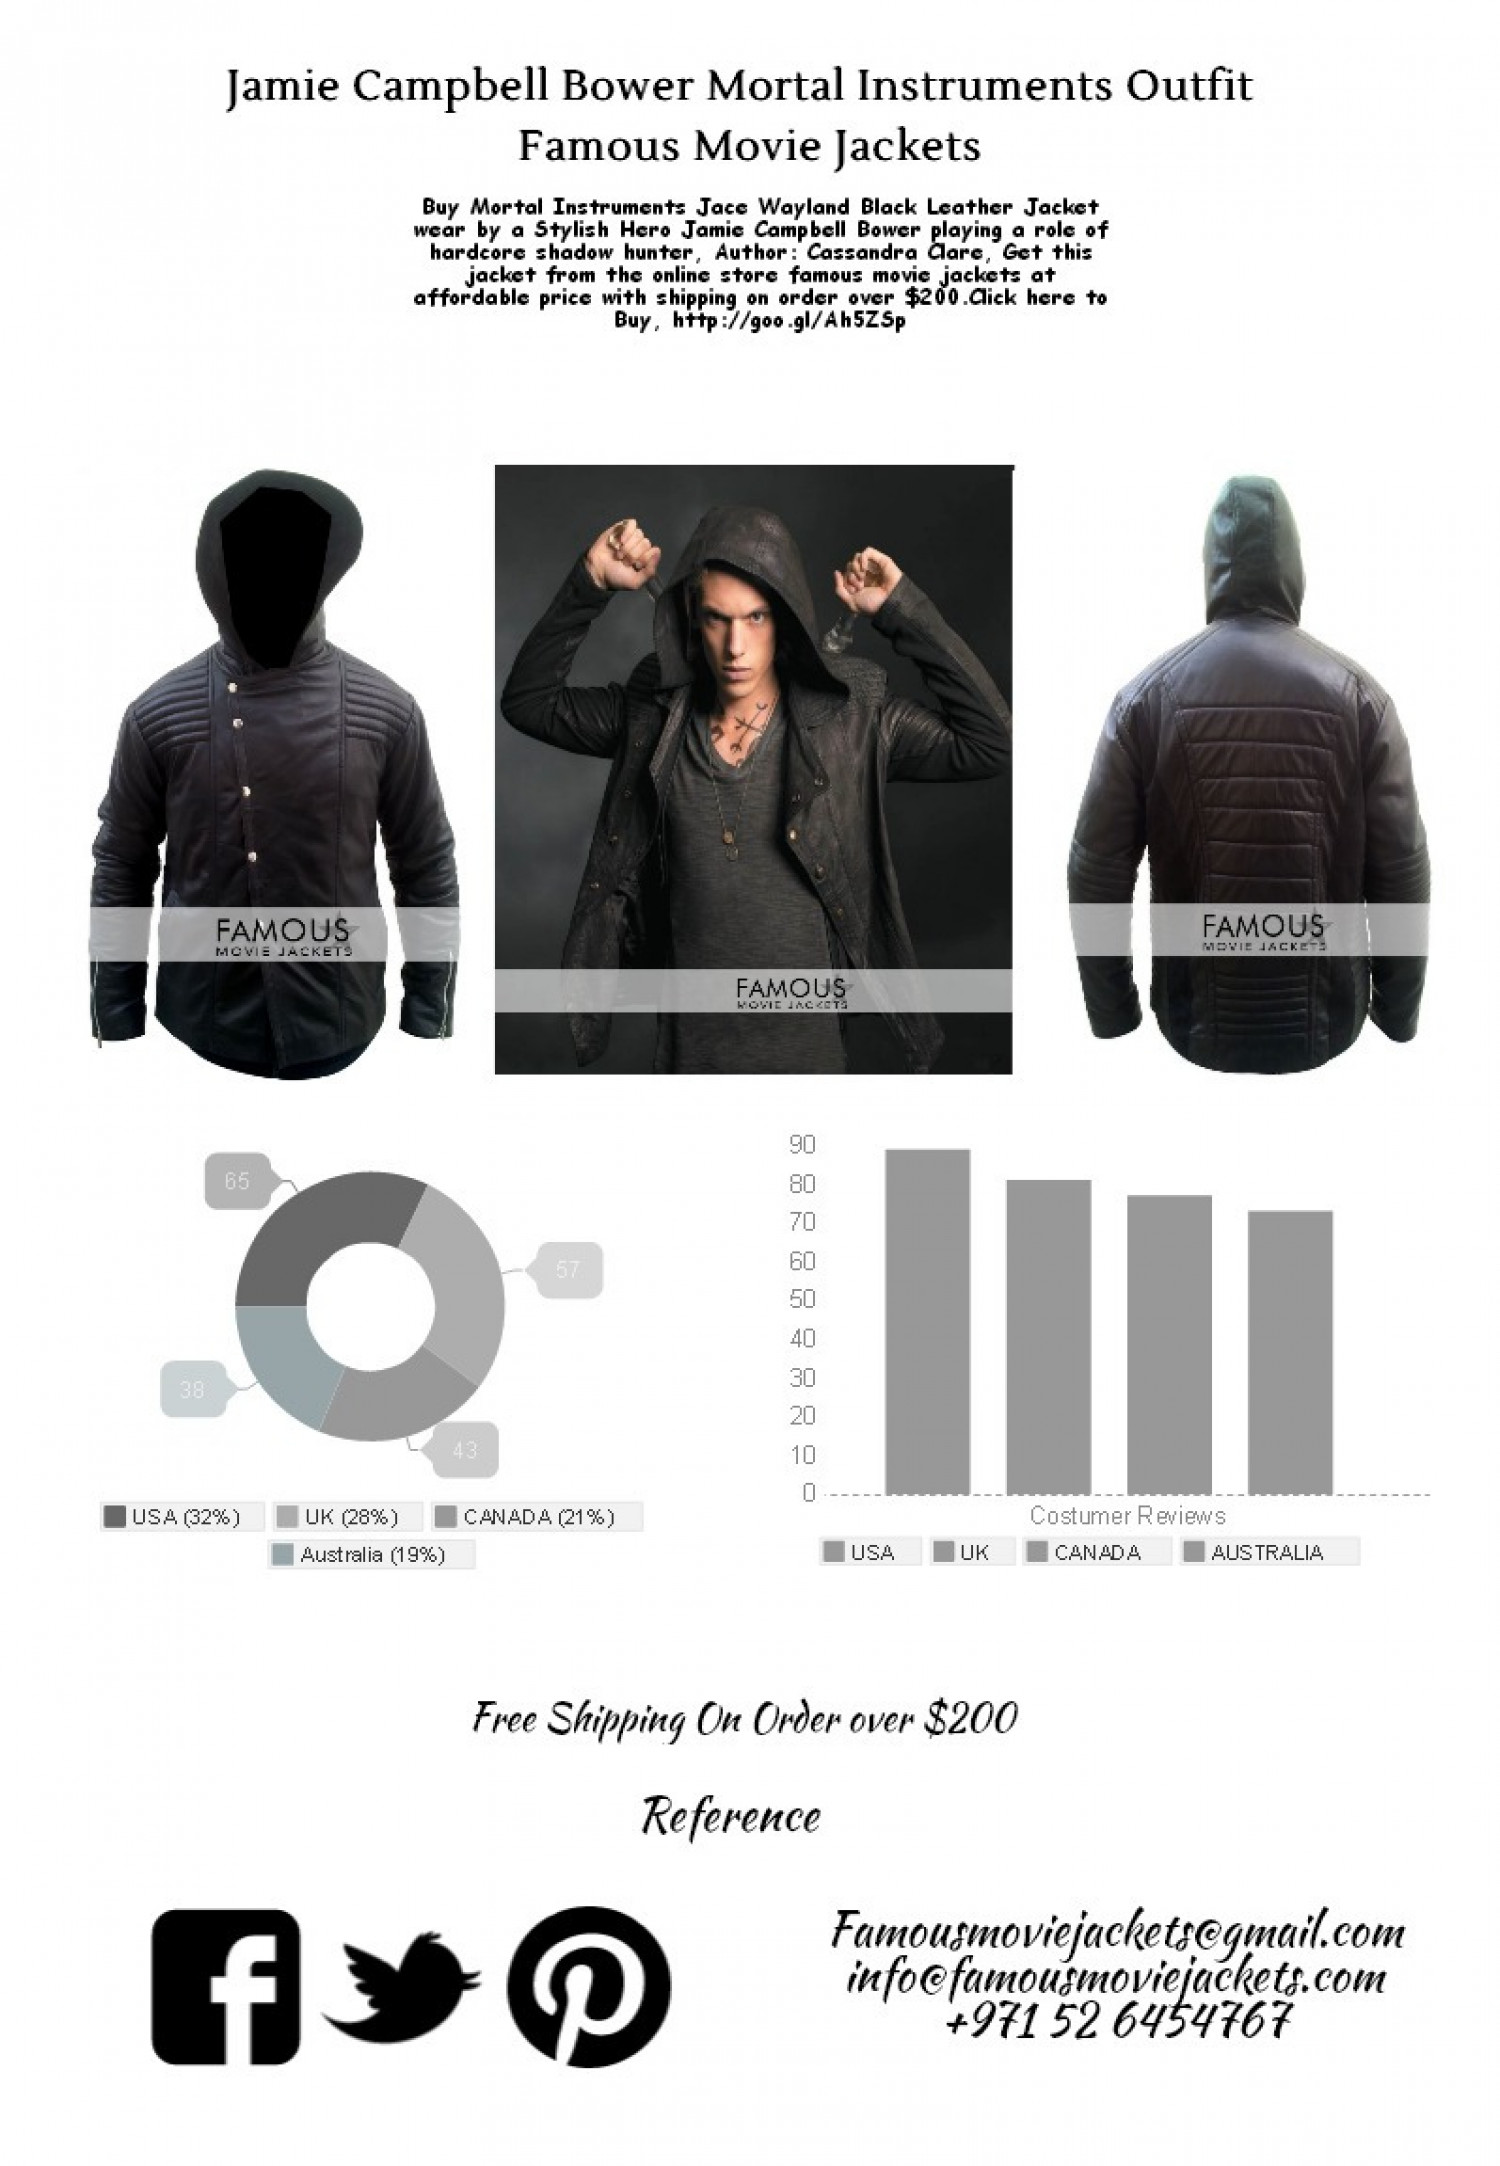 Jamie Campbell Bower Mortal Instruments Jacket Infographic